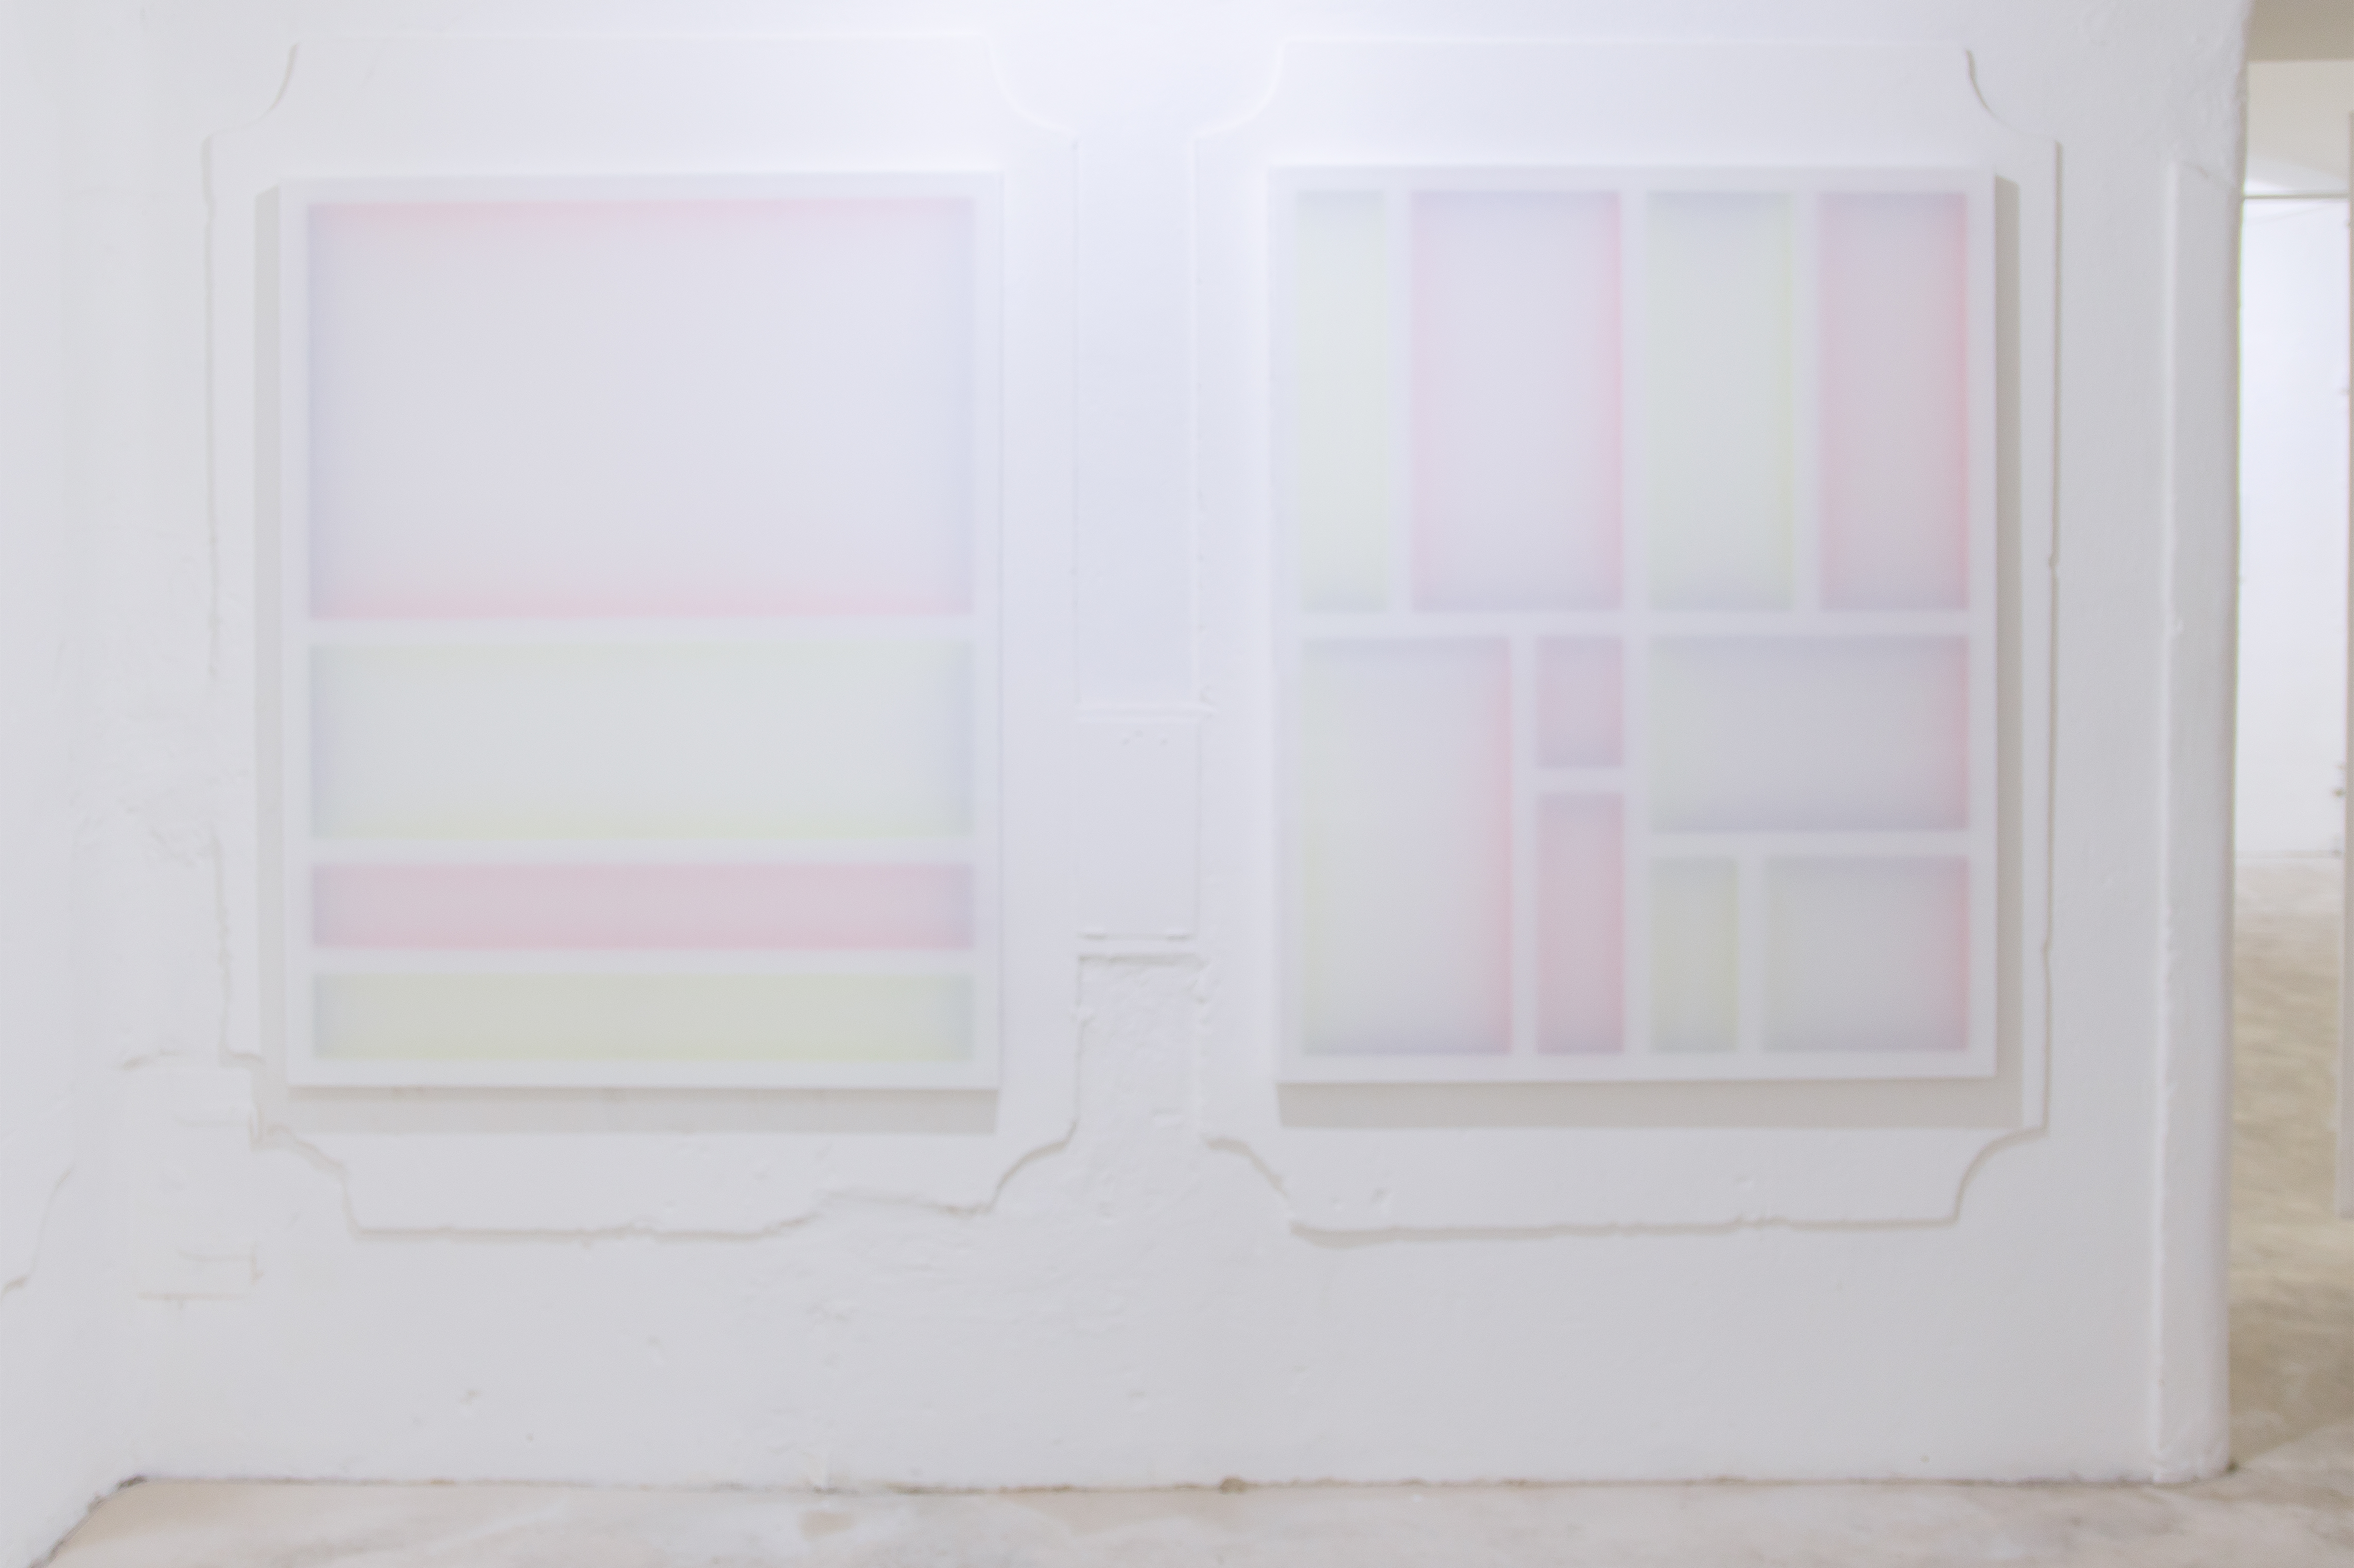 Untitled (to), Installation view at LisaBird Contemporary, Vienna (AT), 2016, Untitled (to J.O.) Untitled (to L.B.), Acrylic on wood/stretchers, transparent polyester, 150 x 120 cm each, 2016